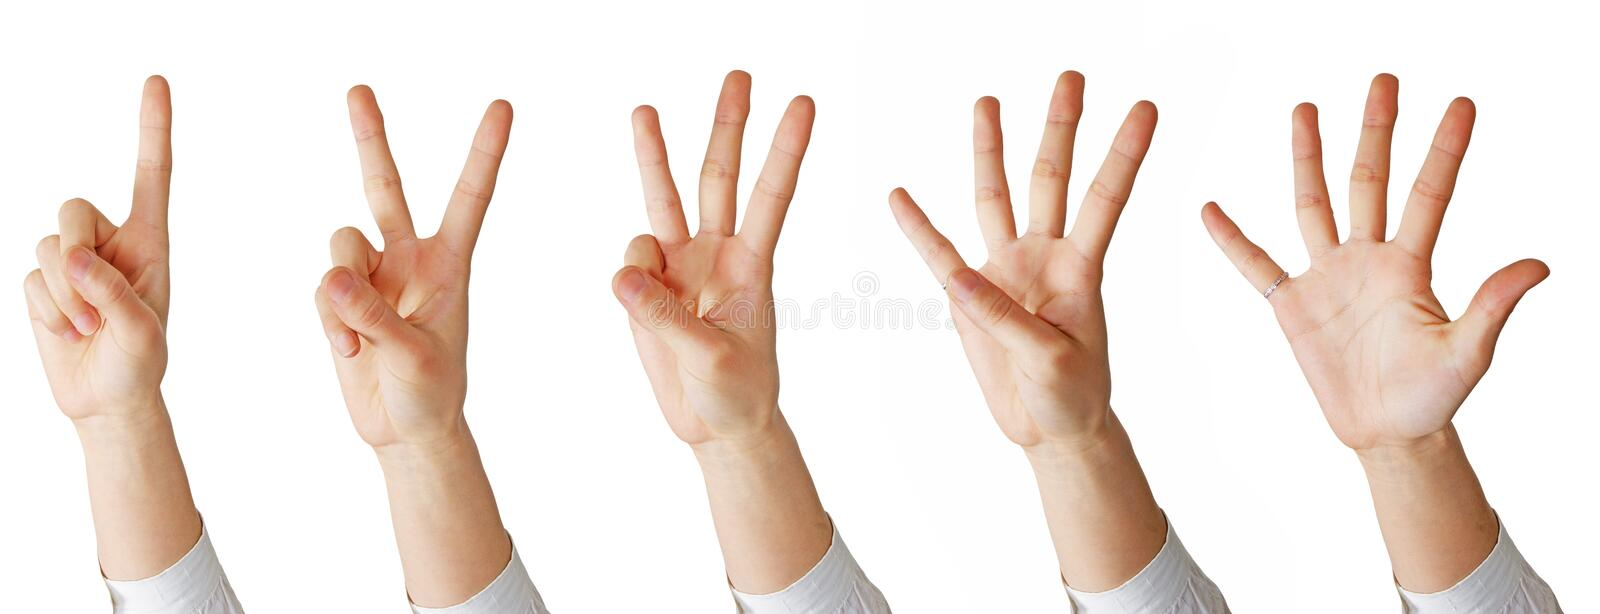 Download Hand math stock image. Image of number, learn, four, counting - 18419005